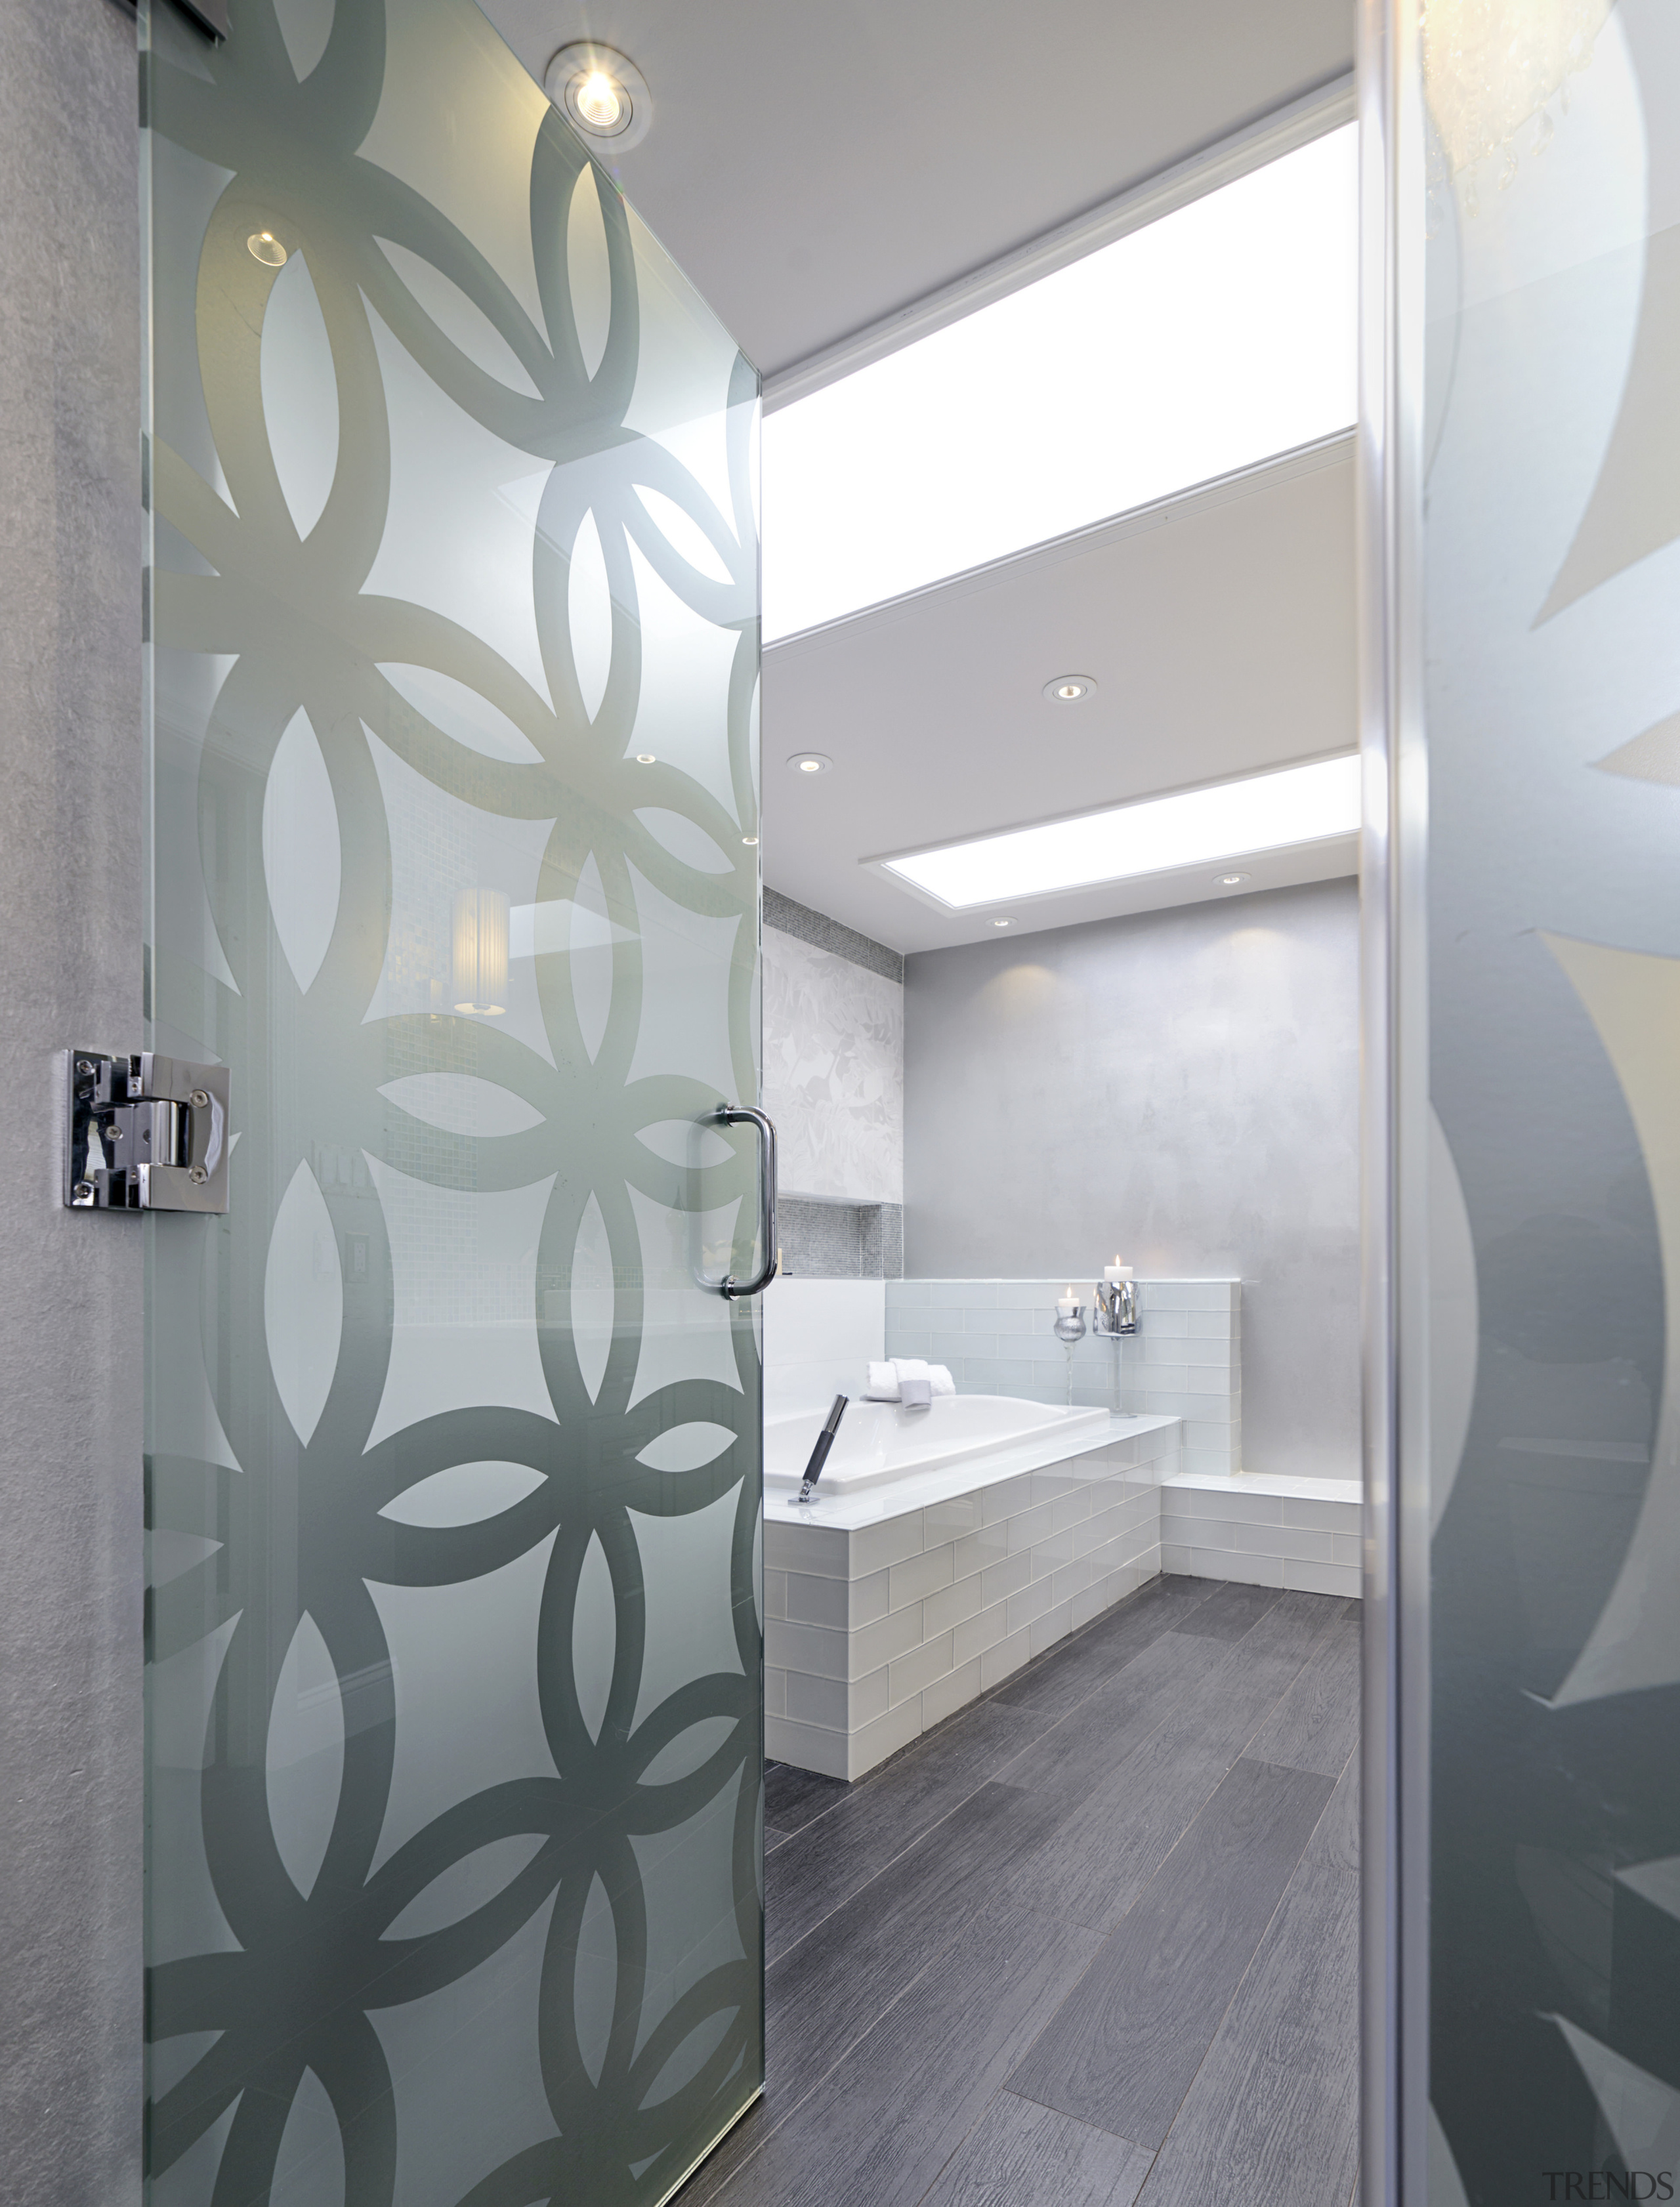 A patterned glass privacy wall screens the shower architecture, bathroom, ceiling, daylighting, floor, interior design, room, wall, gray